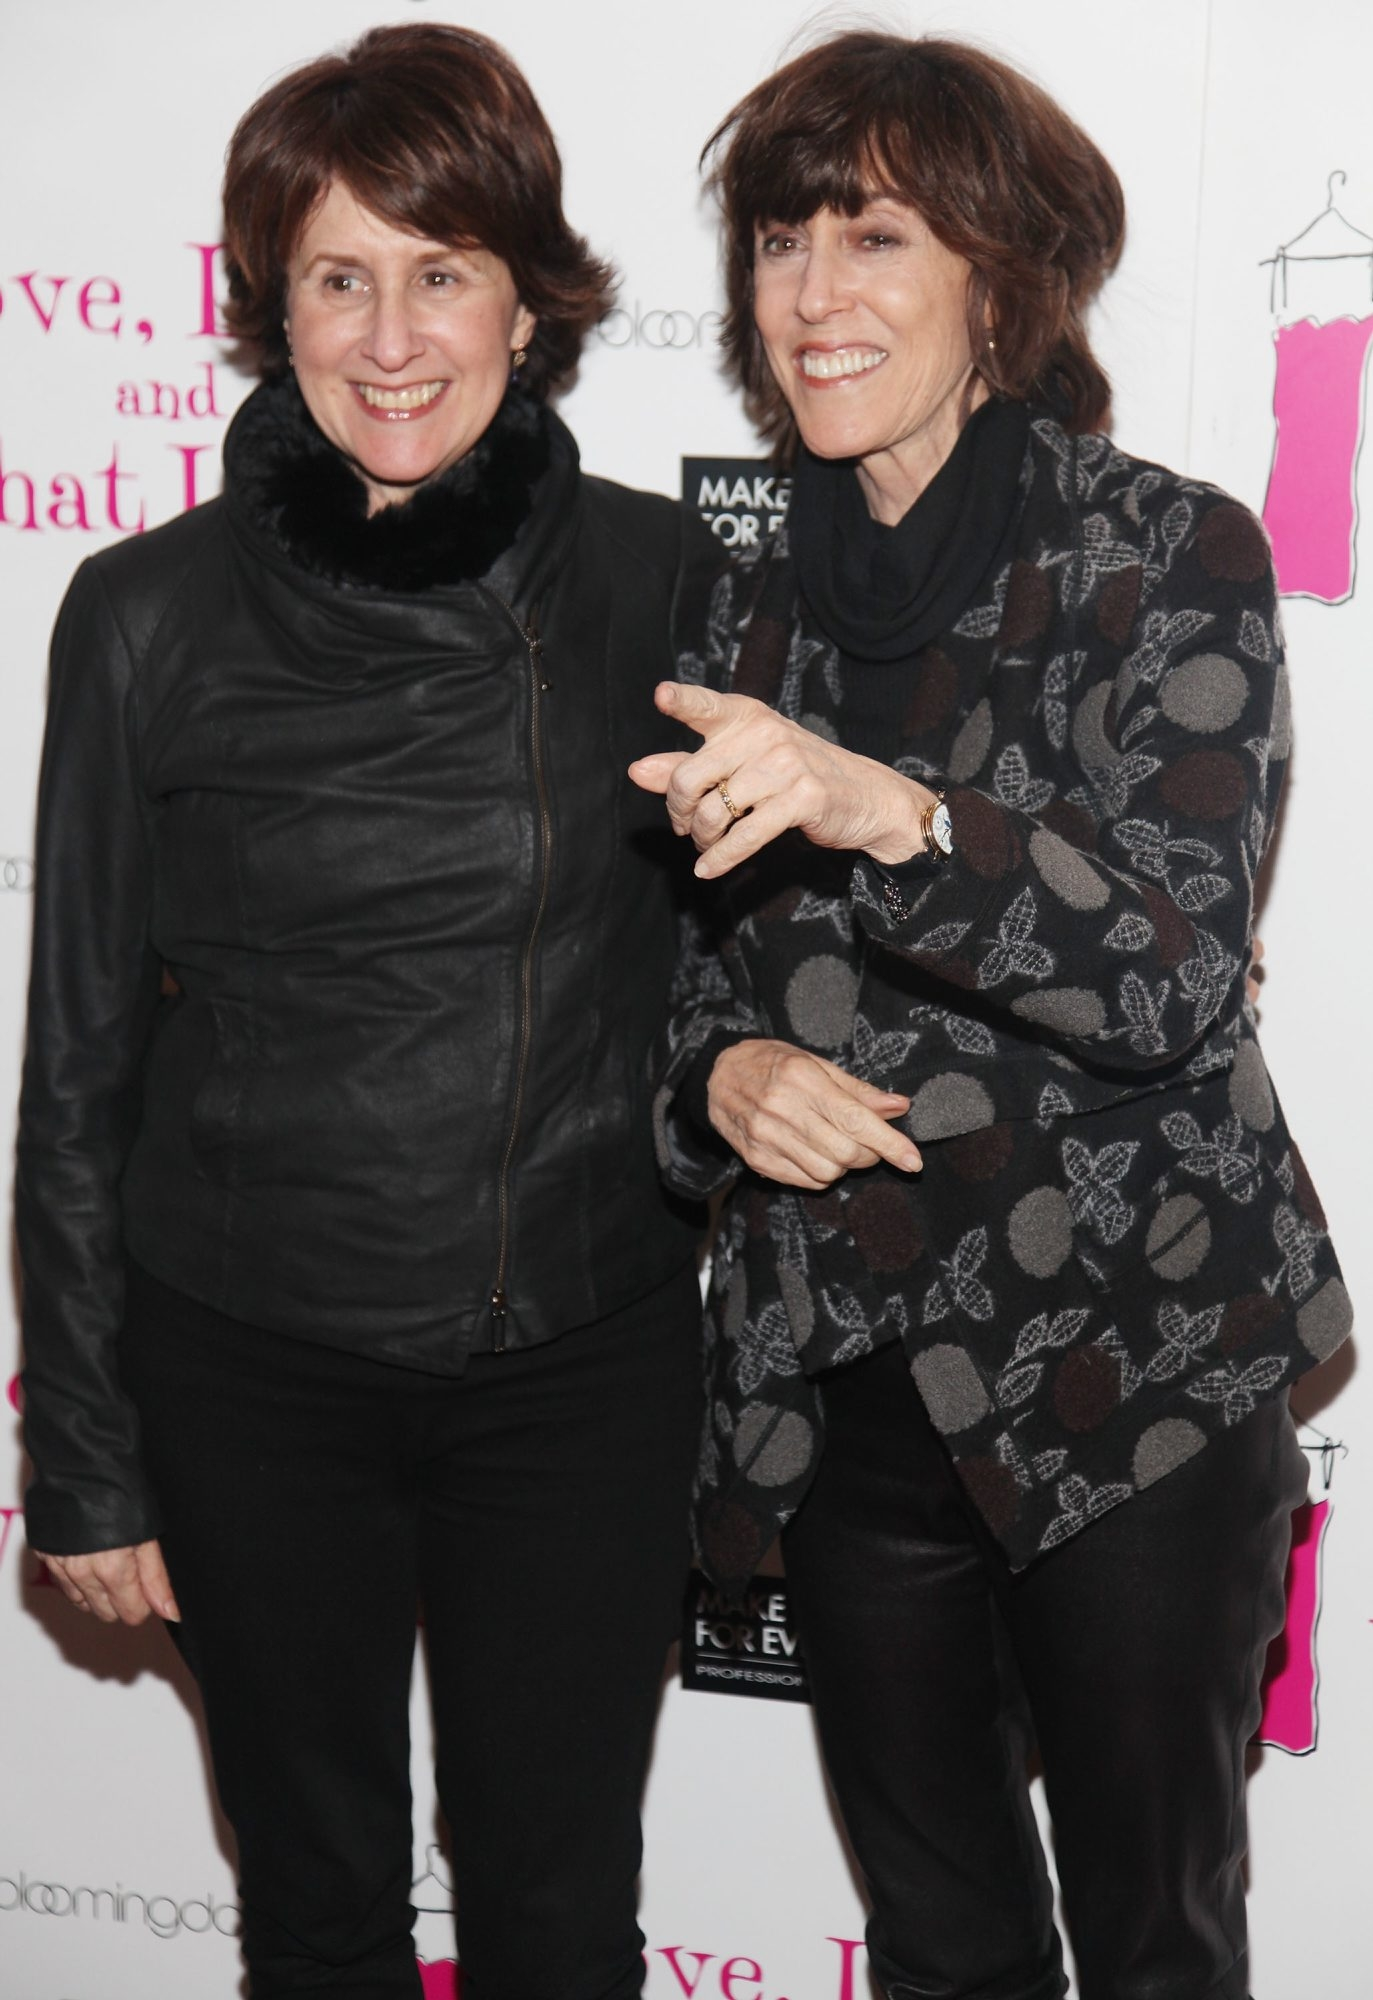 """Delia Ephron, left, and Nora Ephron attend the """"Love, Loss, and What I Wore"""" 500th performance celebration in 2011  in New York City."""